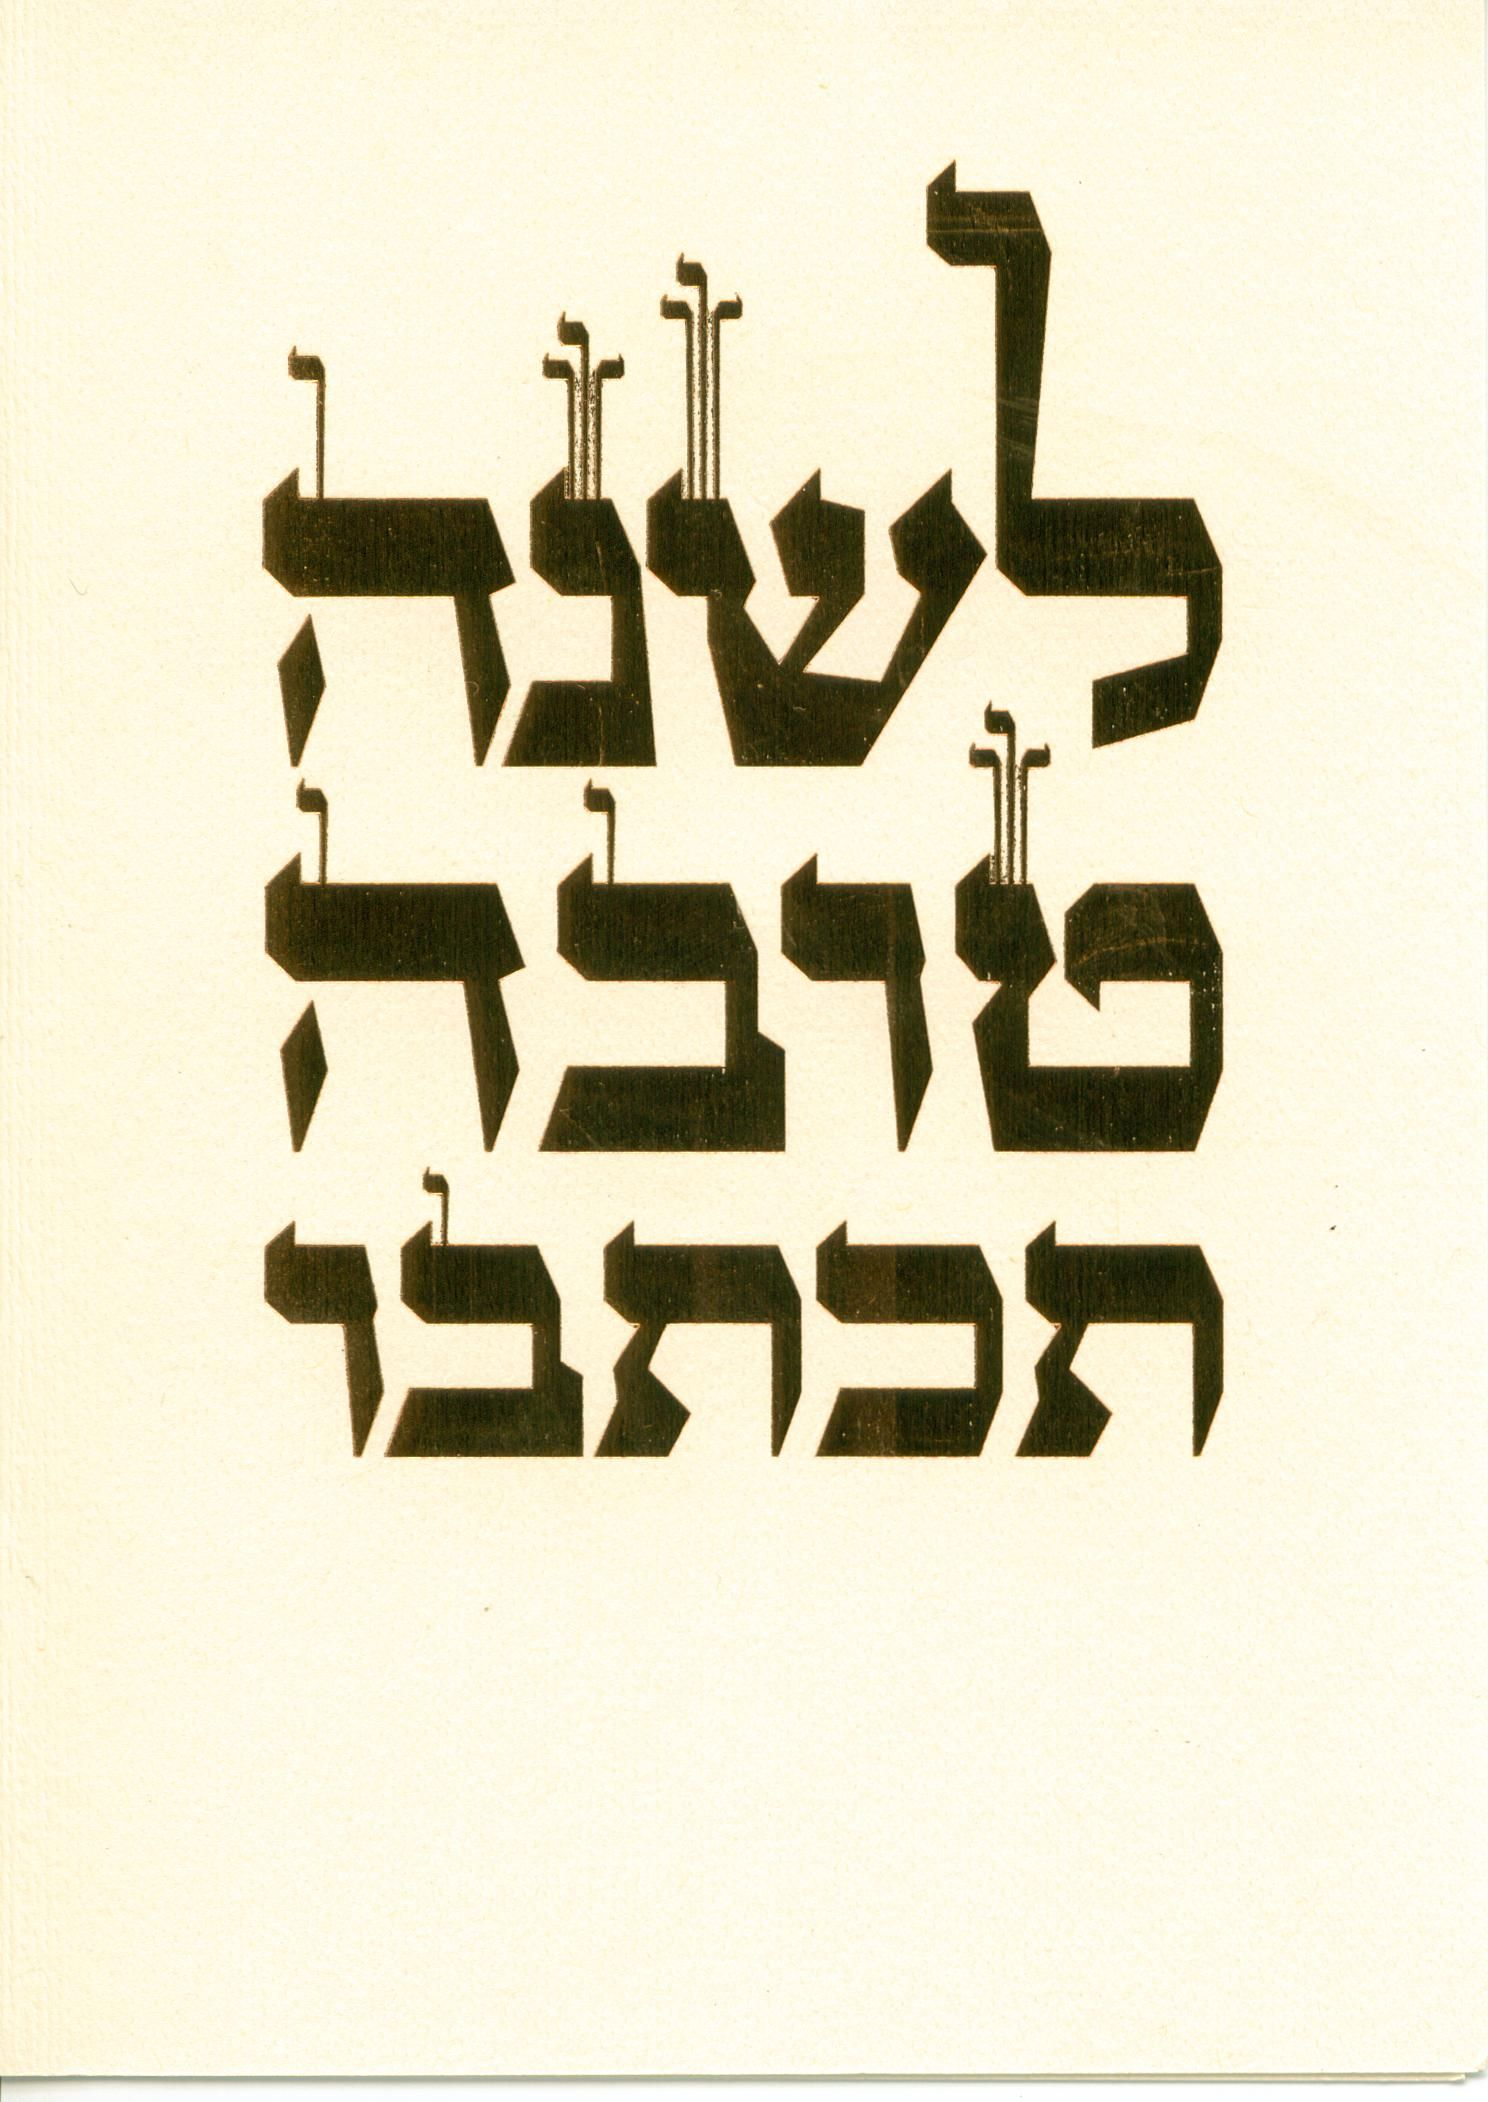 L'Shanah Tovah Tikatevu: May you be inscribed in the book of like for a good year